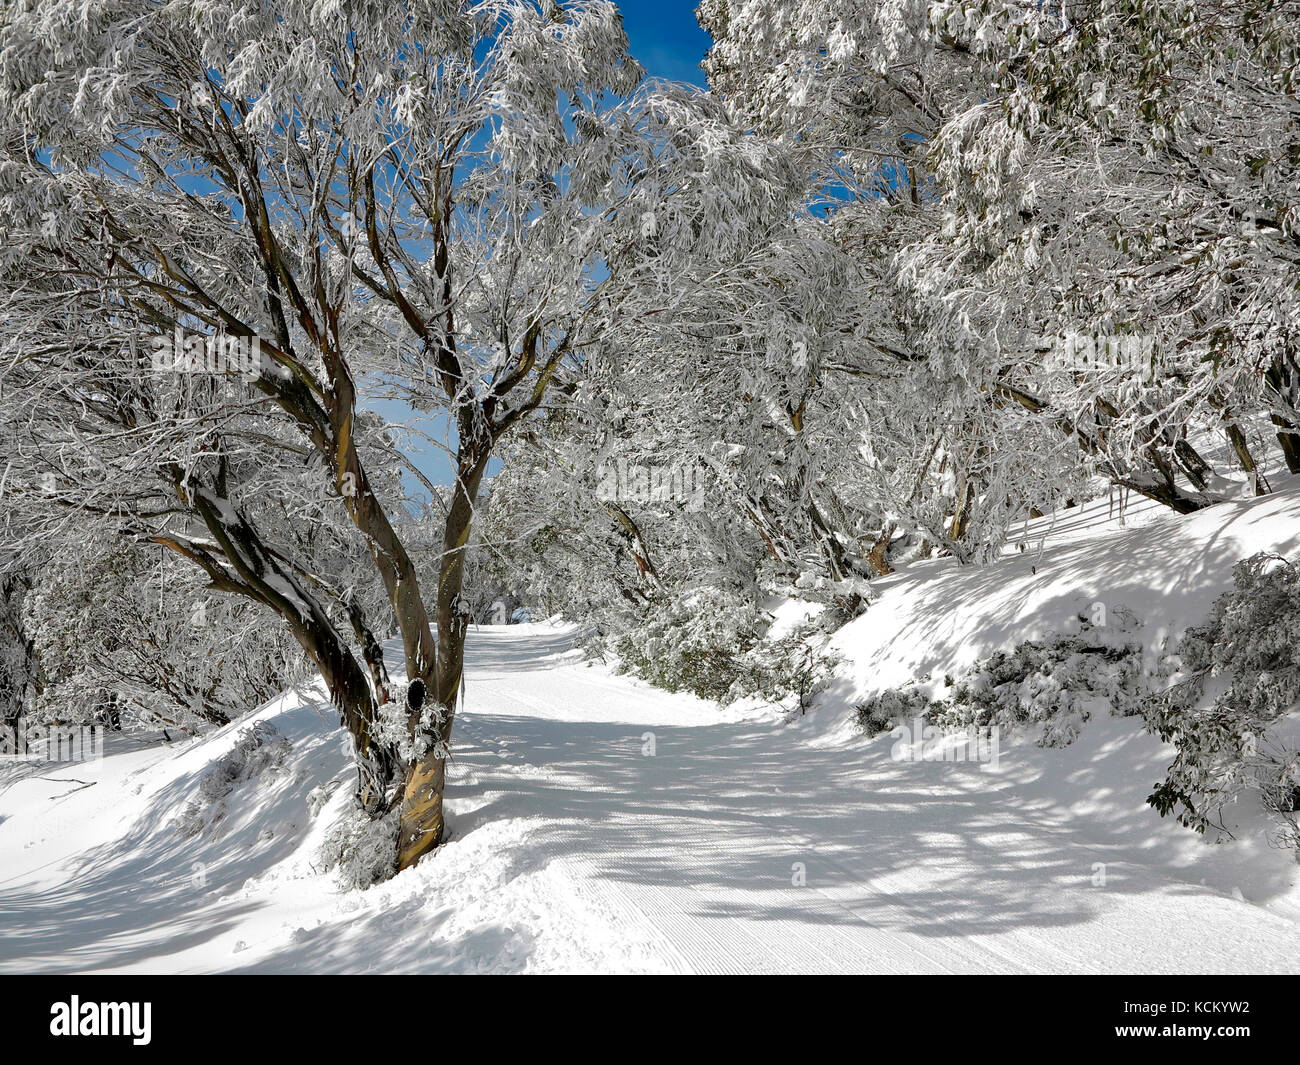 A cross-country ski trail after early morning grooming. Snow gums (Eucalyptus pauciflora) line the trail. Falls - Stock Image